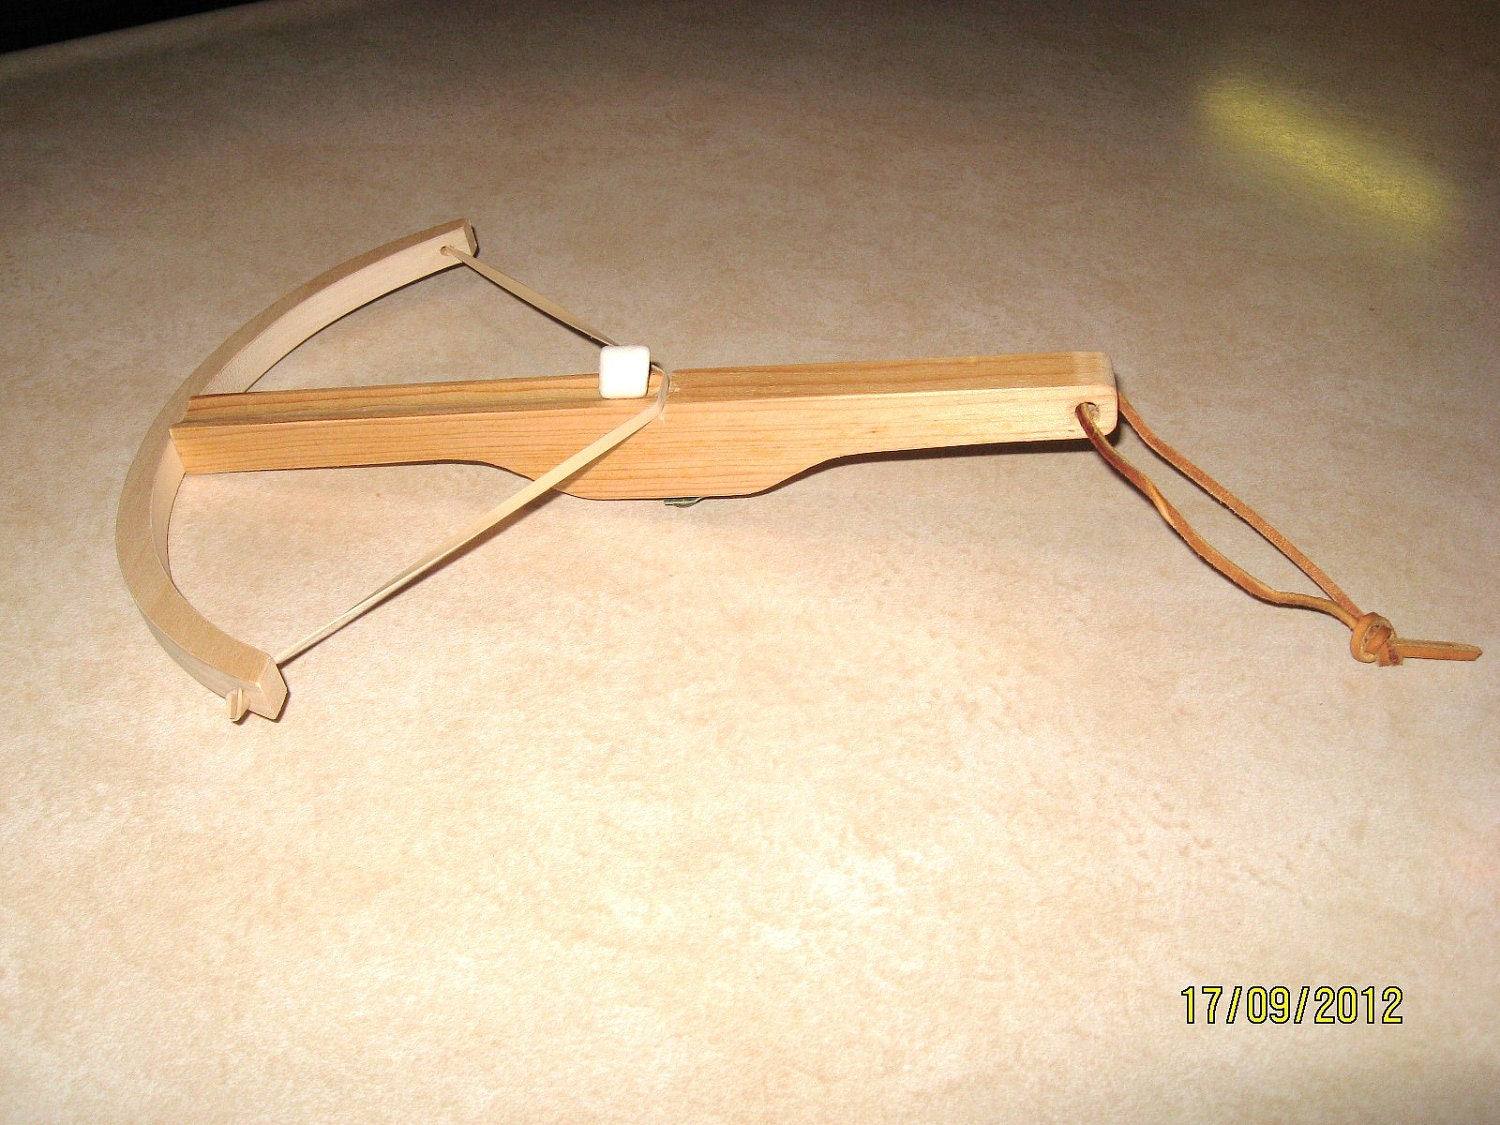 Wooden Marshmallow Crossbow Shooter By Rlwoodcrafts On Etsy